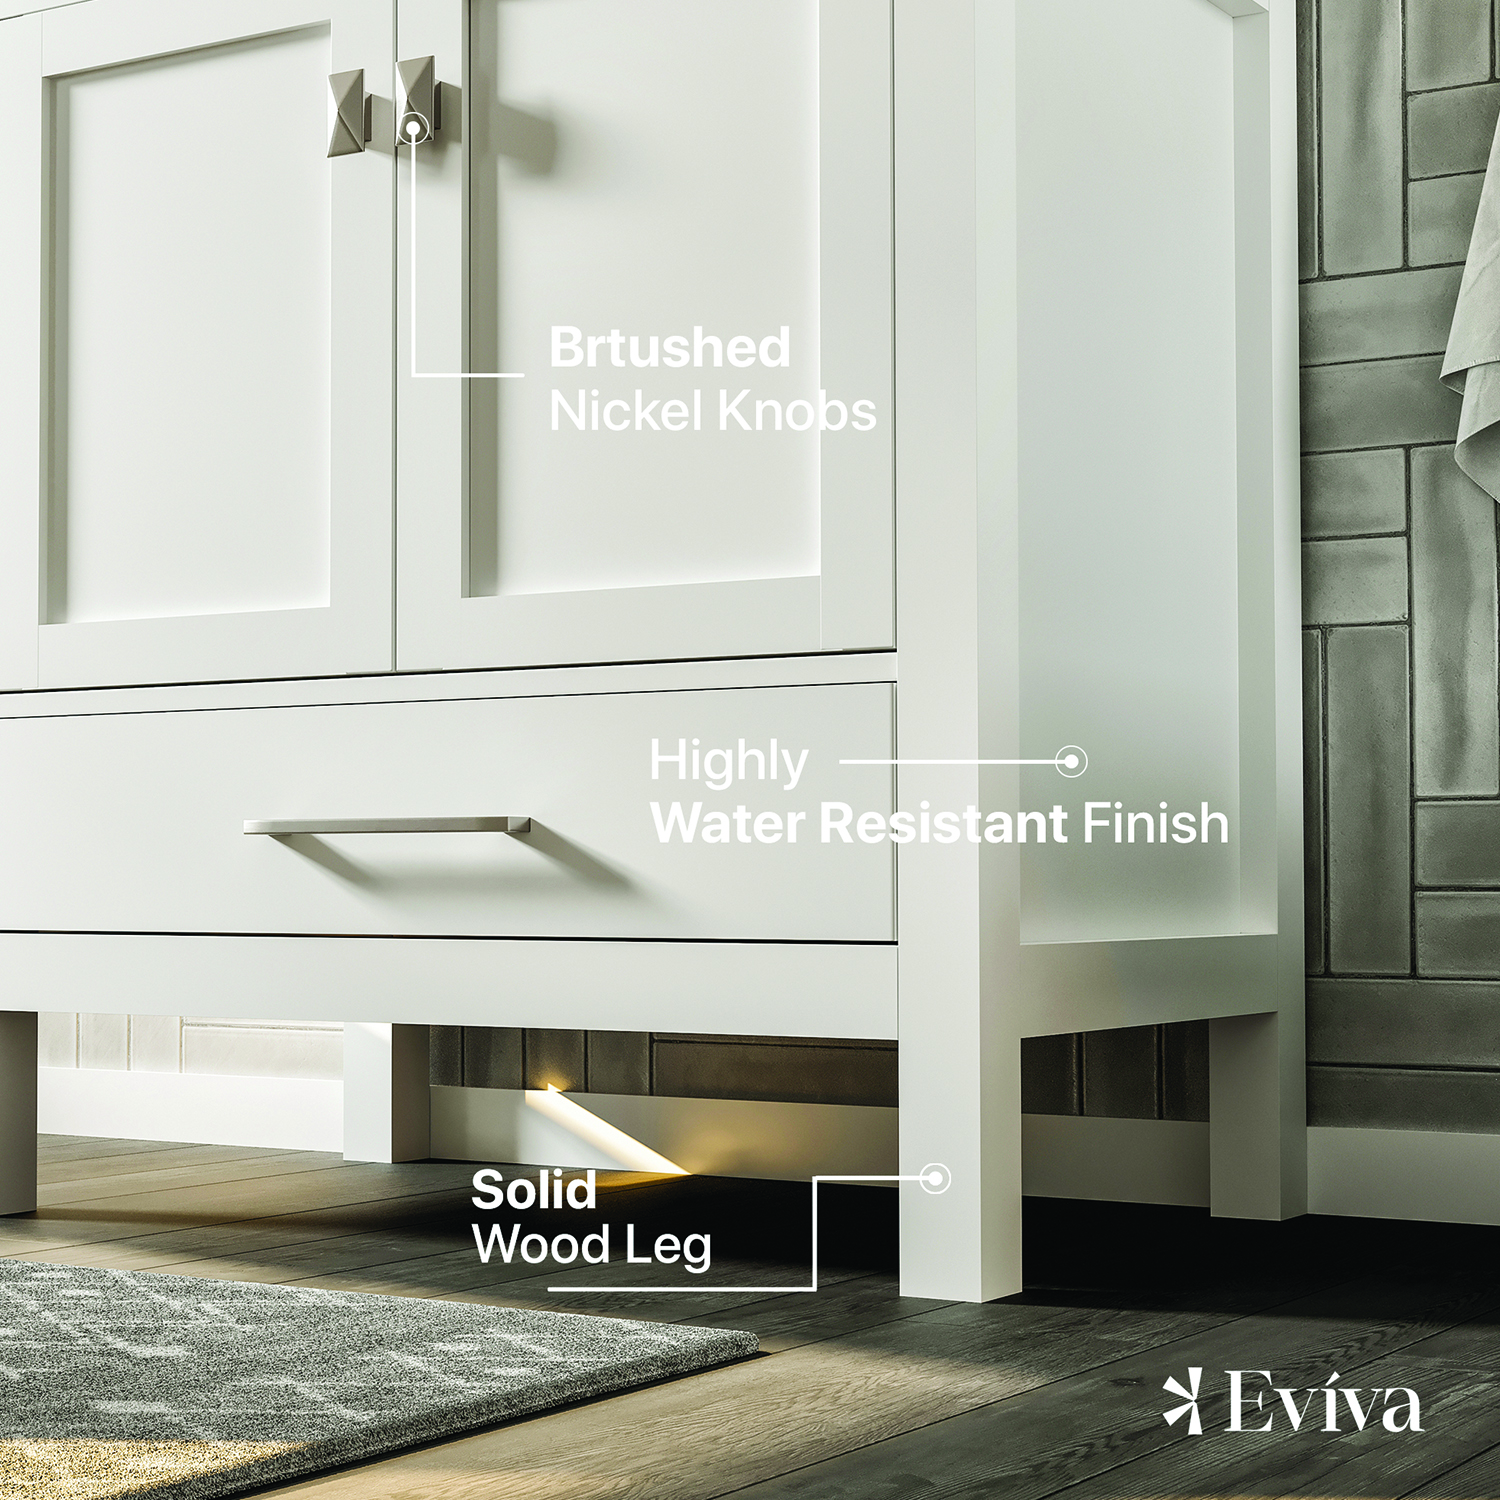 carrara marble countertop. Eviva London 30\u2033 Transitional White Bathroom Vanity With Carrara Marble Countertop